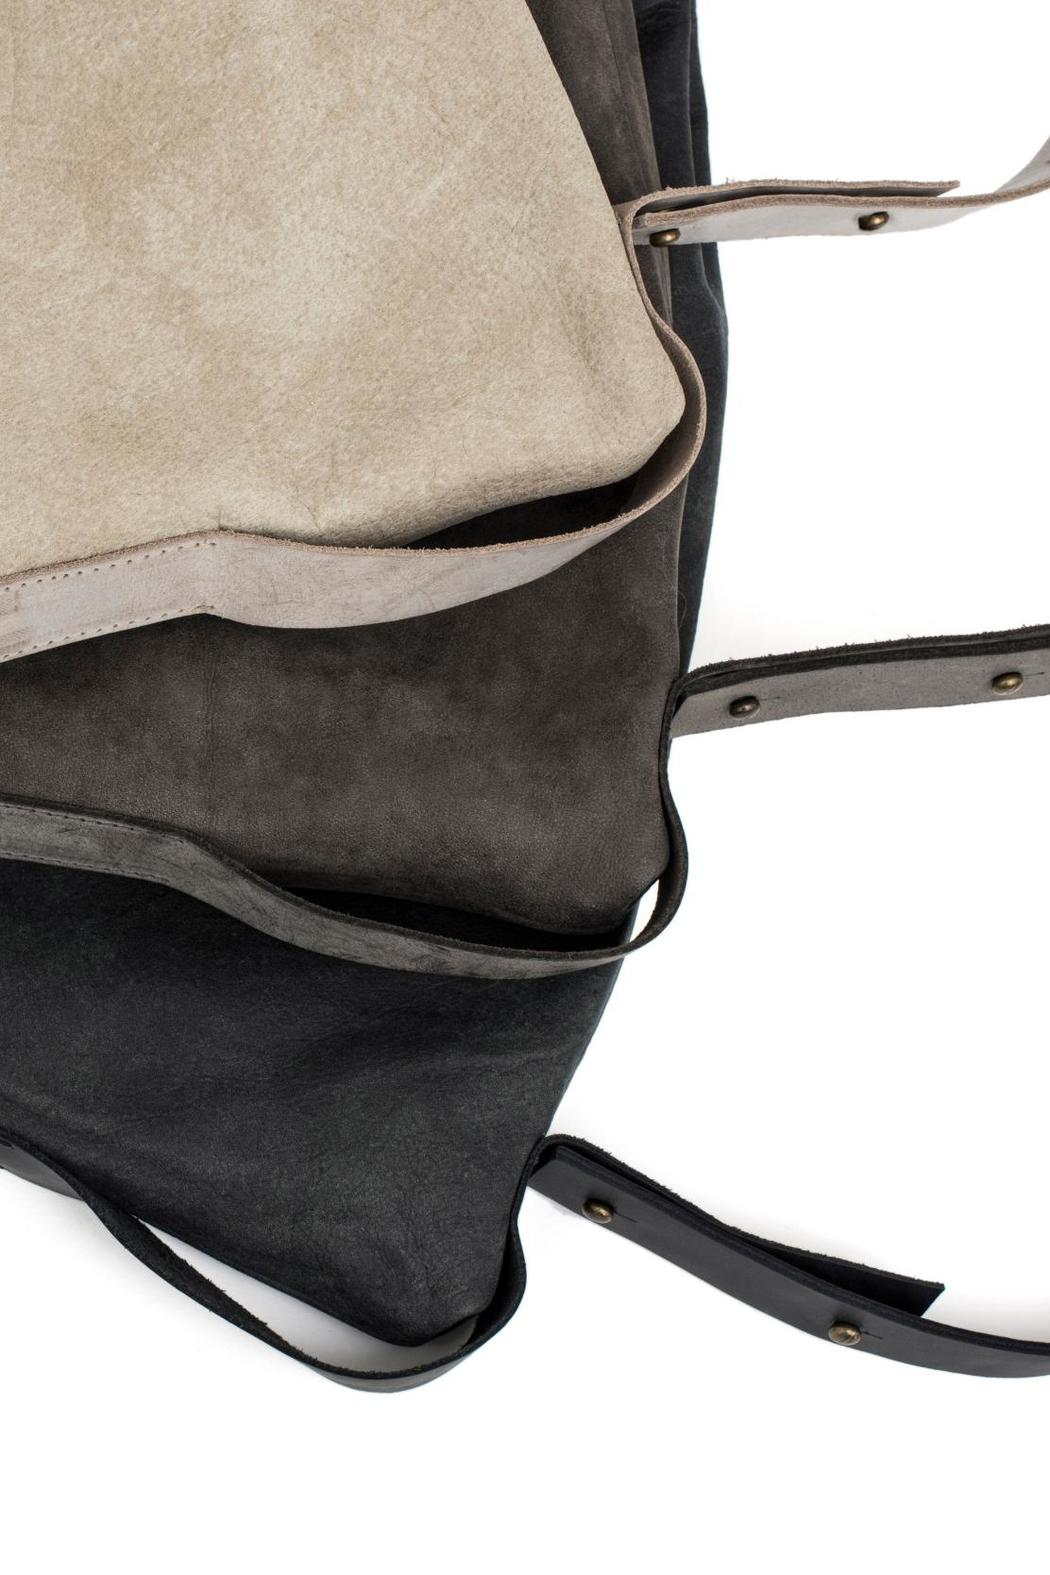 MEIRAV OHAYON Charcoal Drawstring Backpack - Back Cropped Image